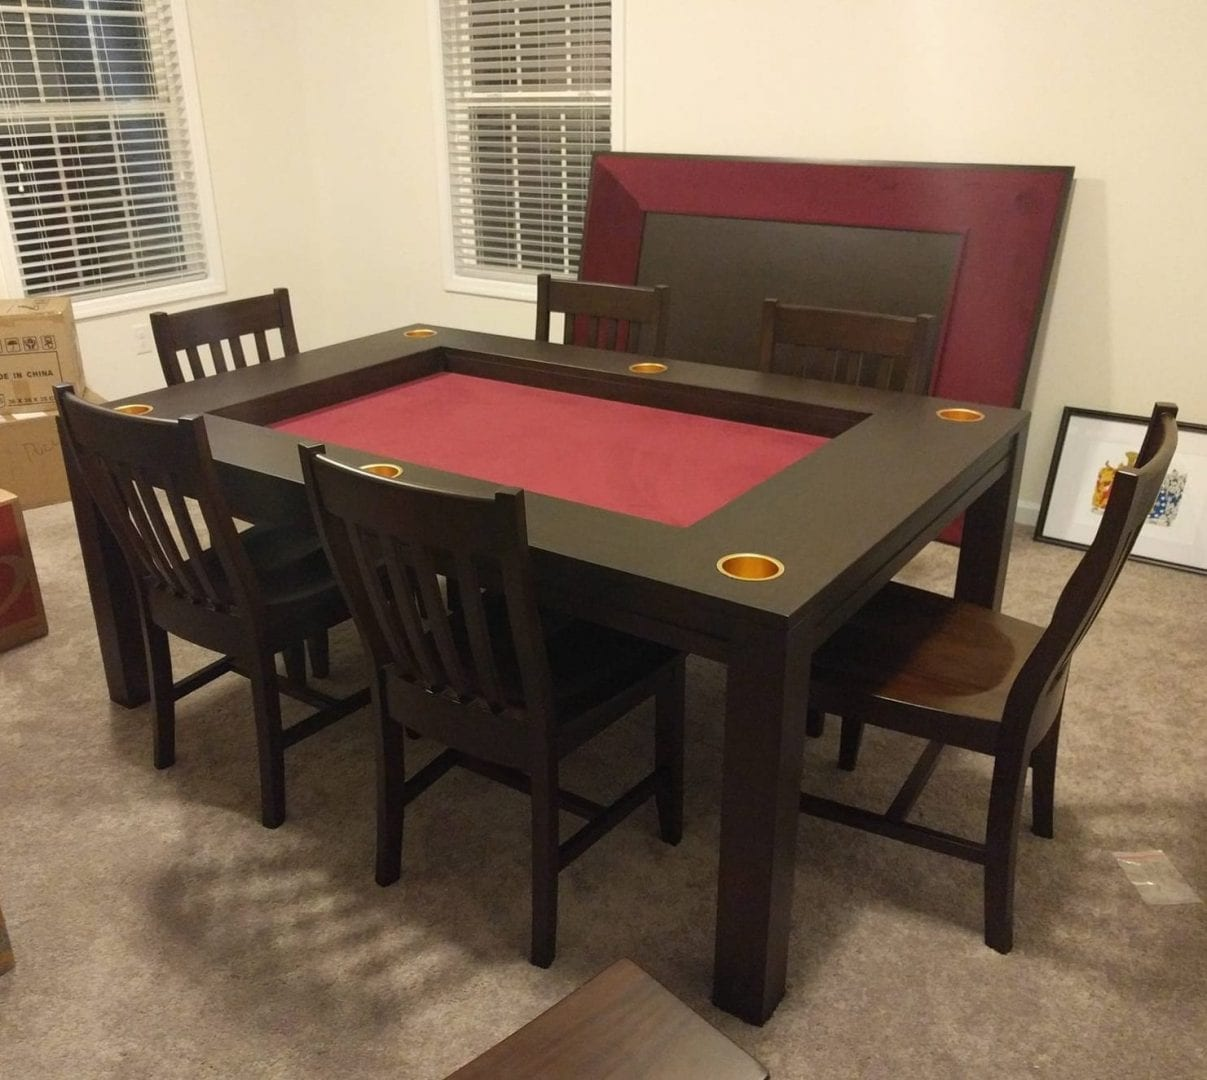 Dining Game Table: One Table for Everyday Dining and Game Night ...